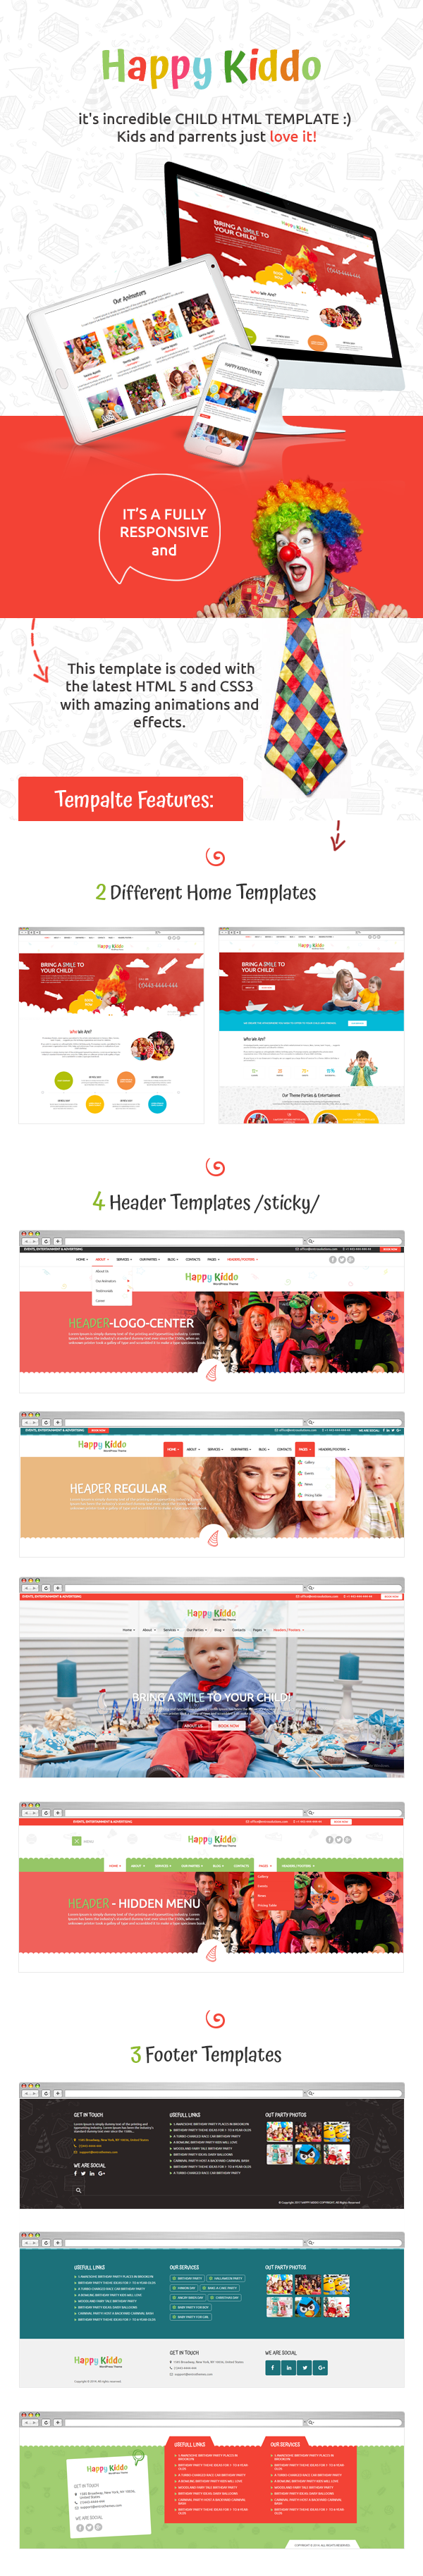 Happy Kiddo - Multipurpose Kids HTML Template - 1